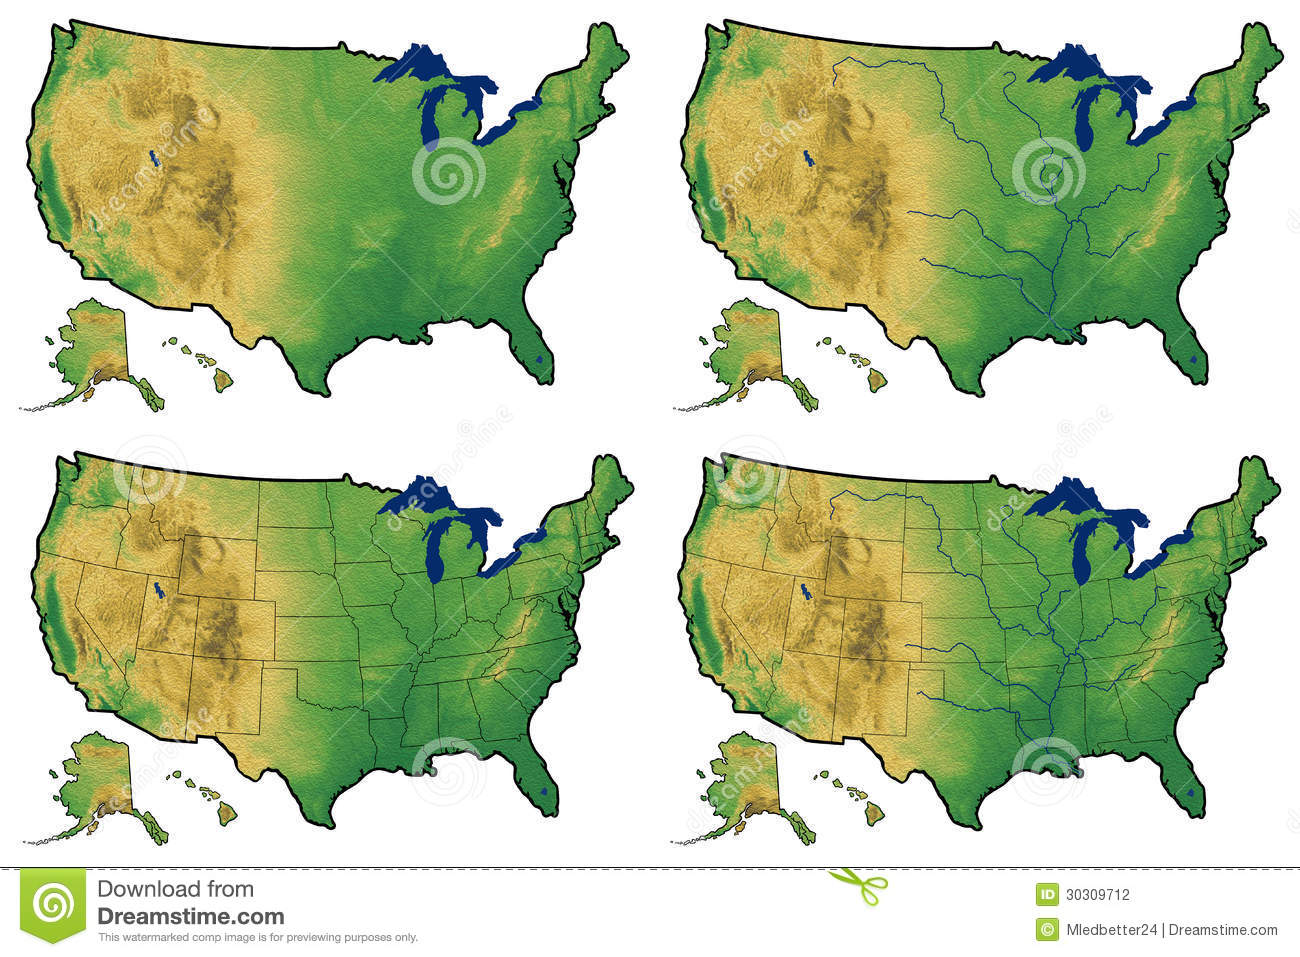 Map Of Idaho And Montana States On Map Images Lets Explore All - Montana physical map united states